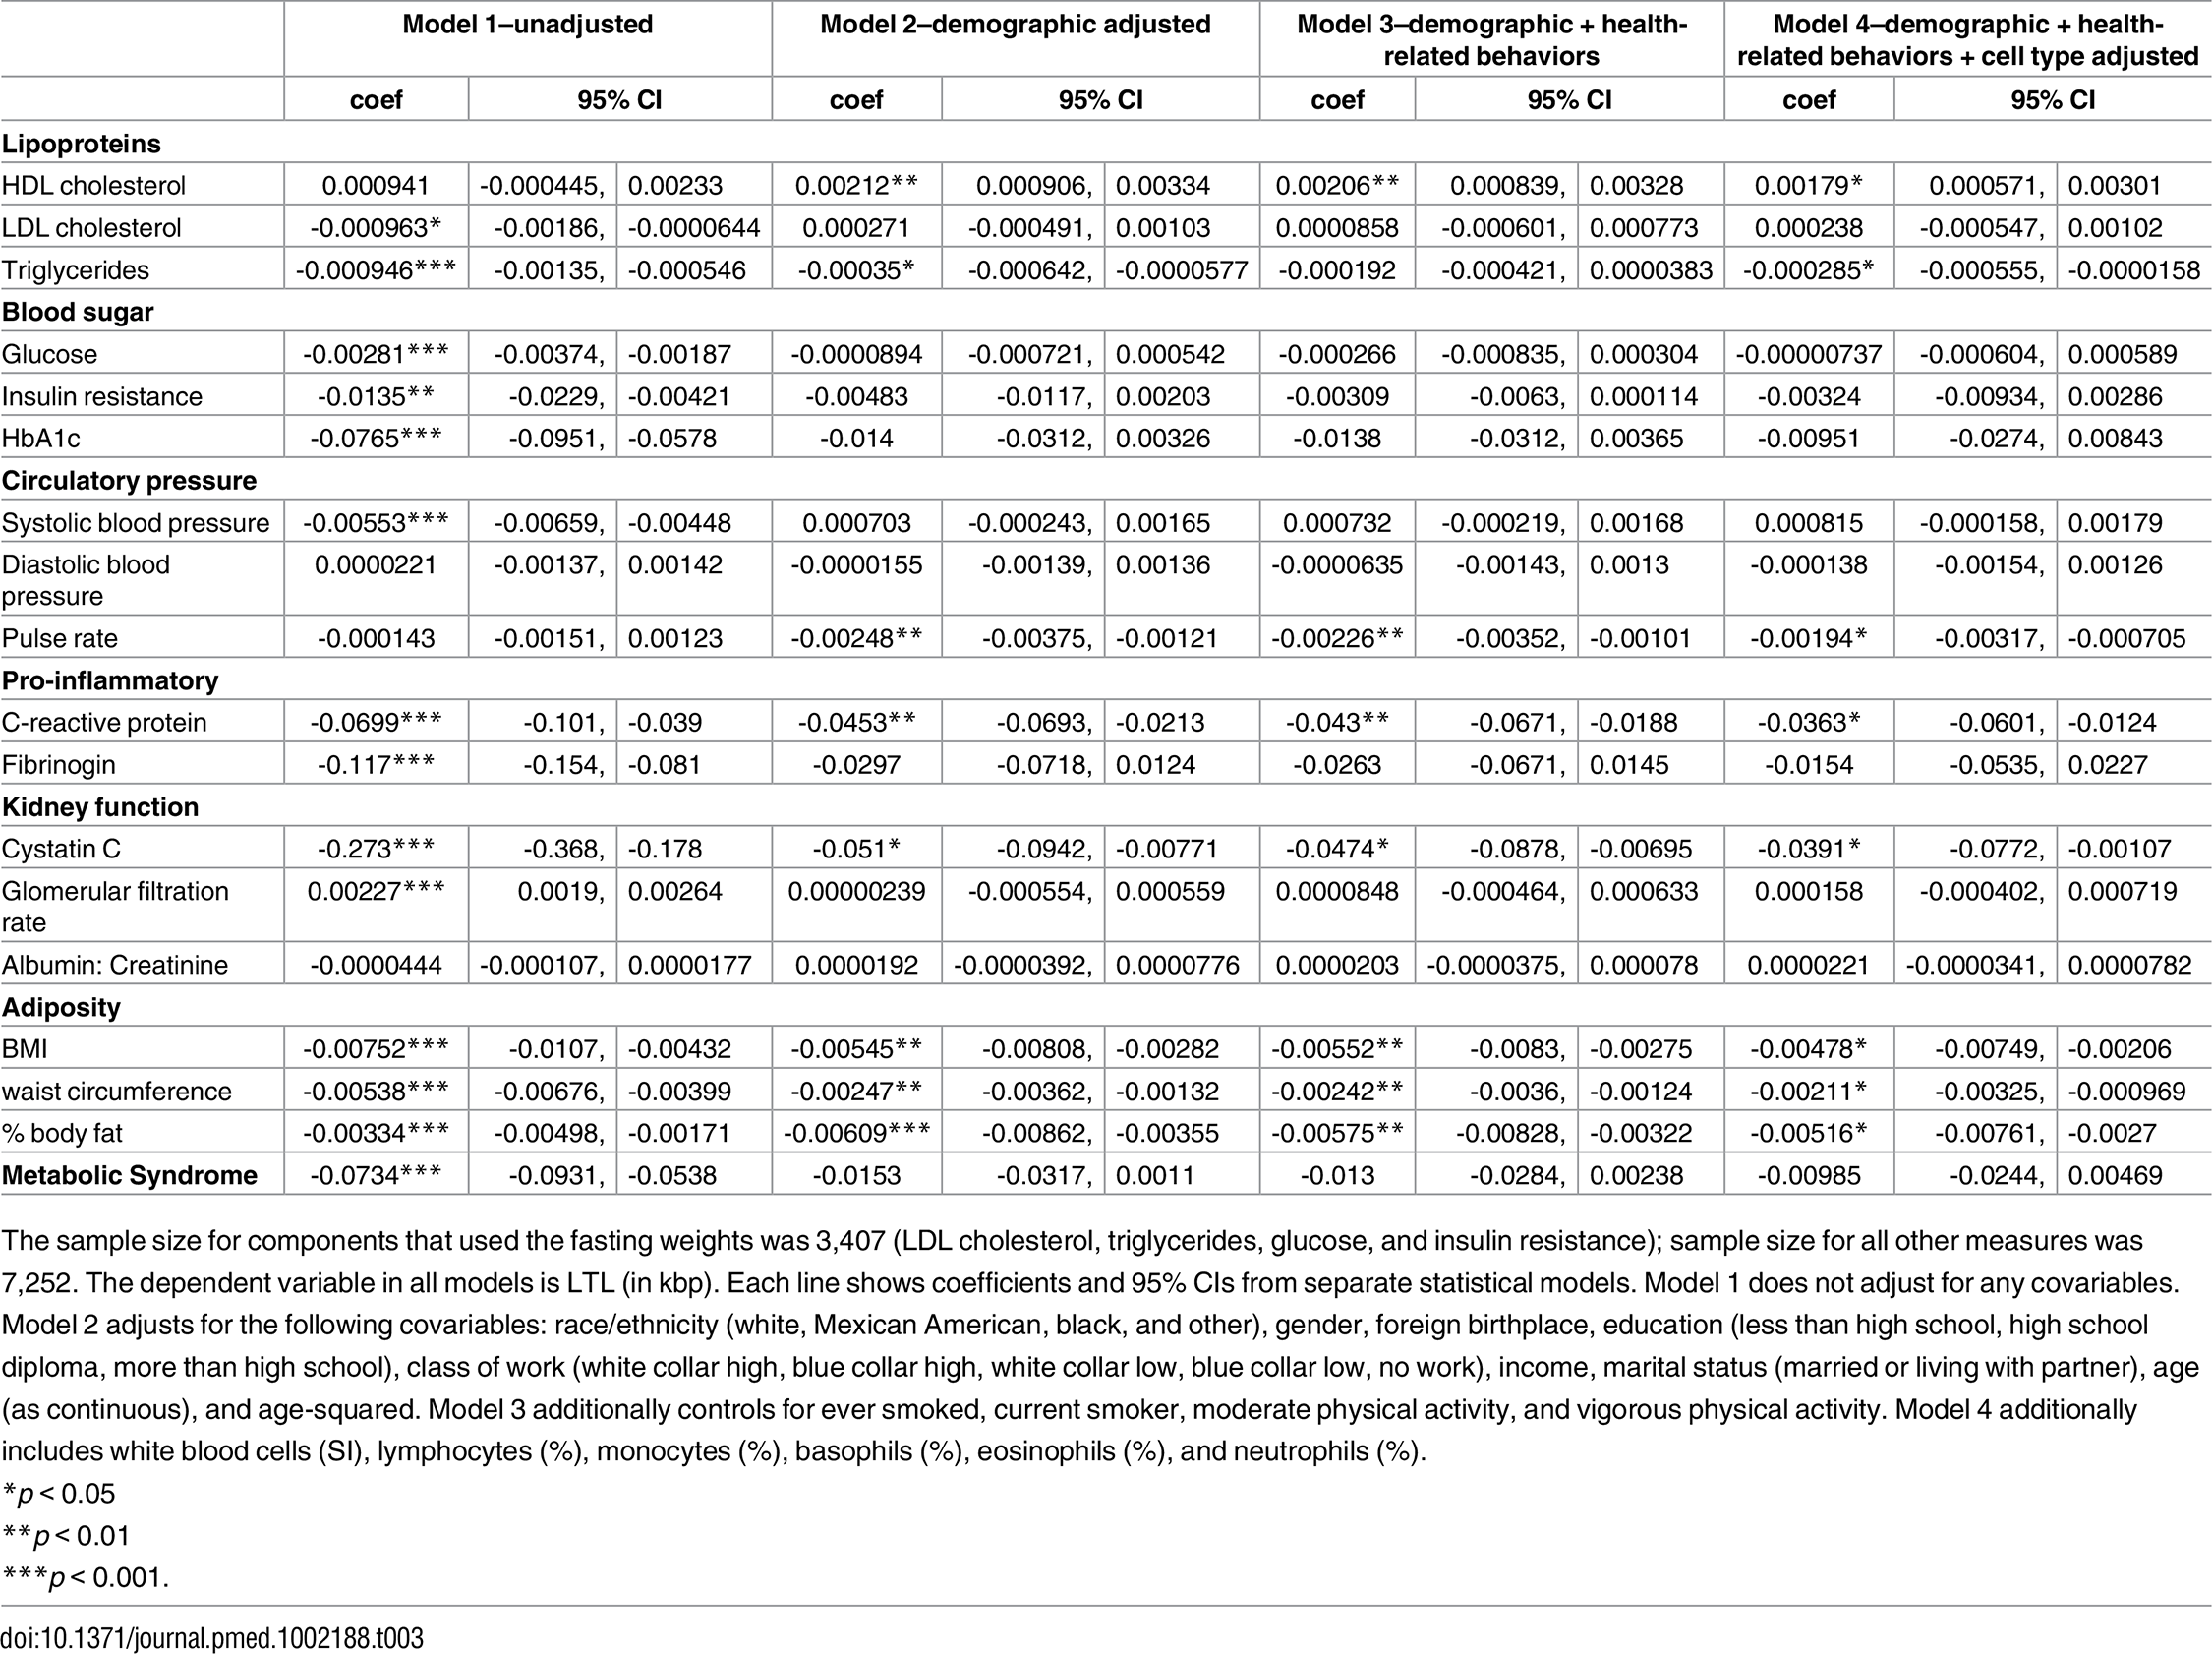 Regression of LTL on continuous biomarkers, ages 20 to 84, NHANES 1999–2002.